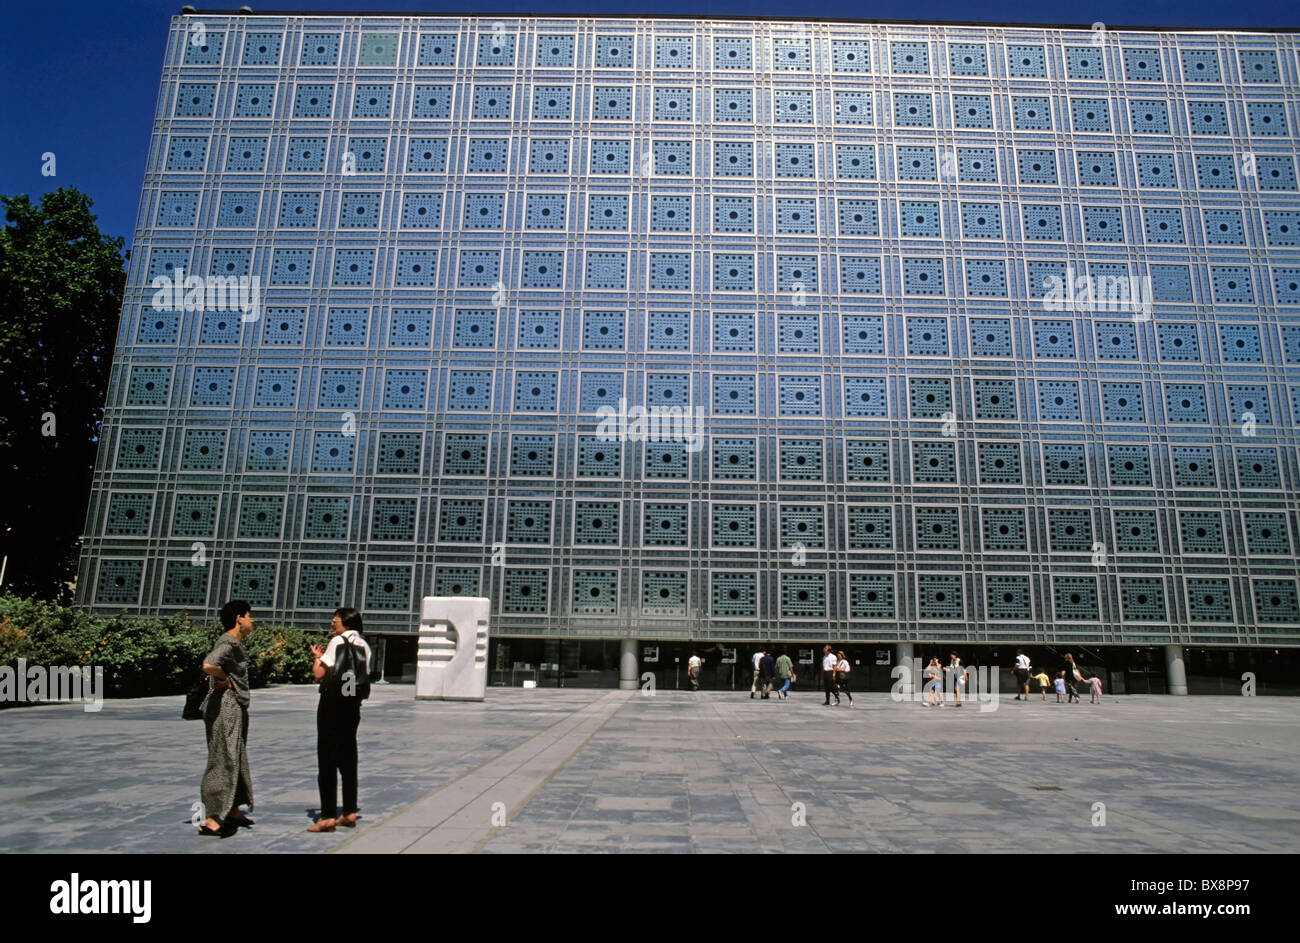 People outside the Arab World Institute - Institut du Monde Arabe - building designed by Jean Nouvel, Paris, France. - Stock Image